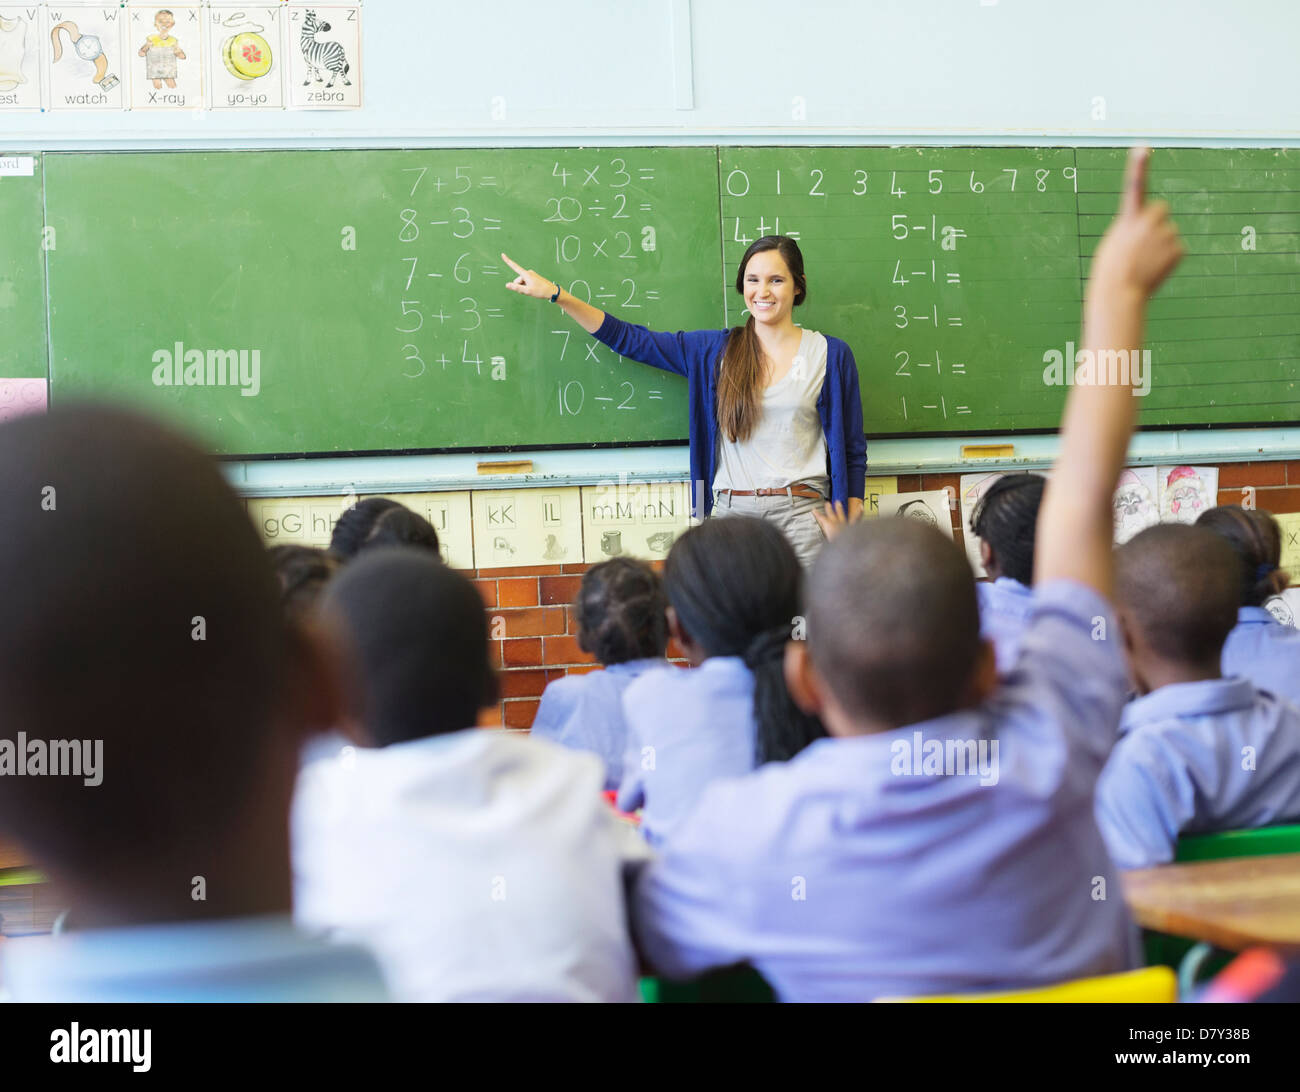 teacher talking to students at chalkboard stock photo 56528987 alamy